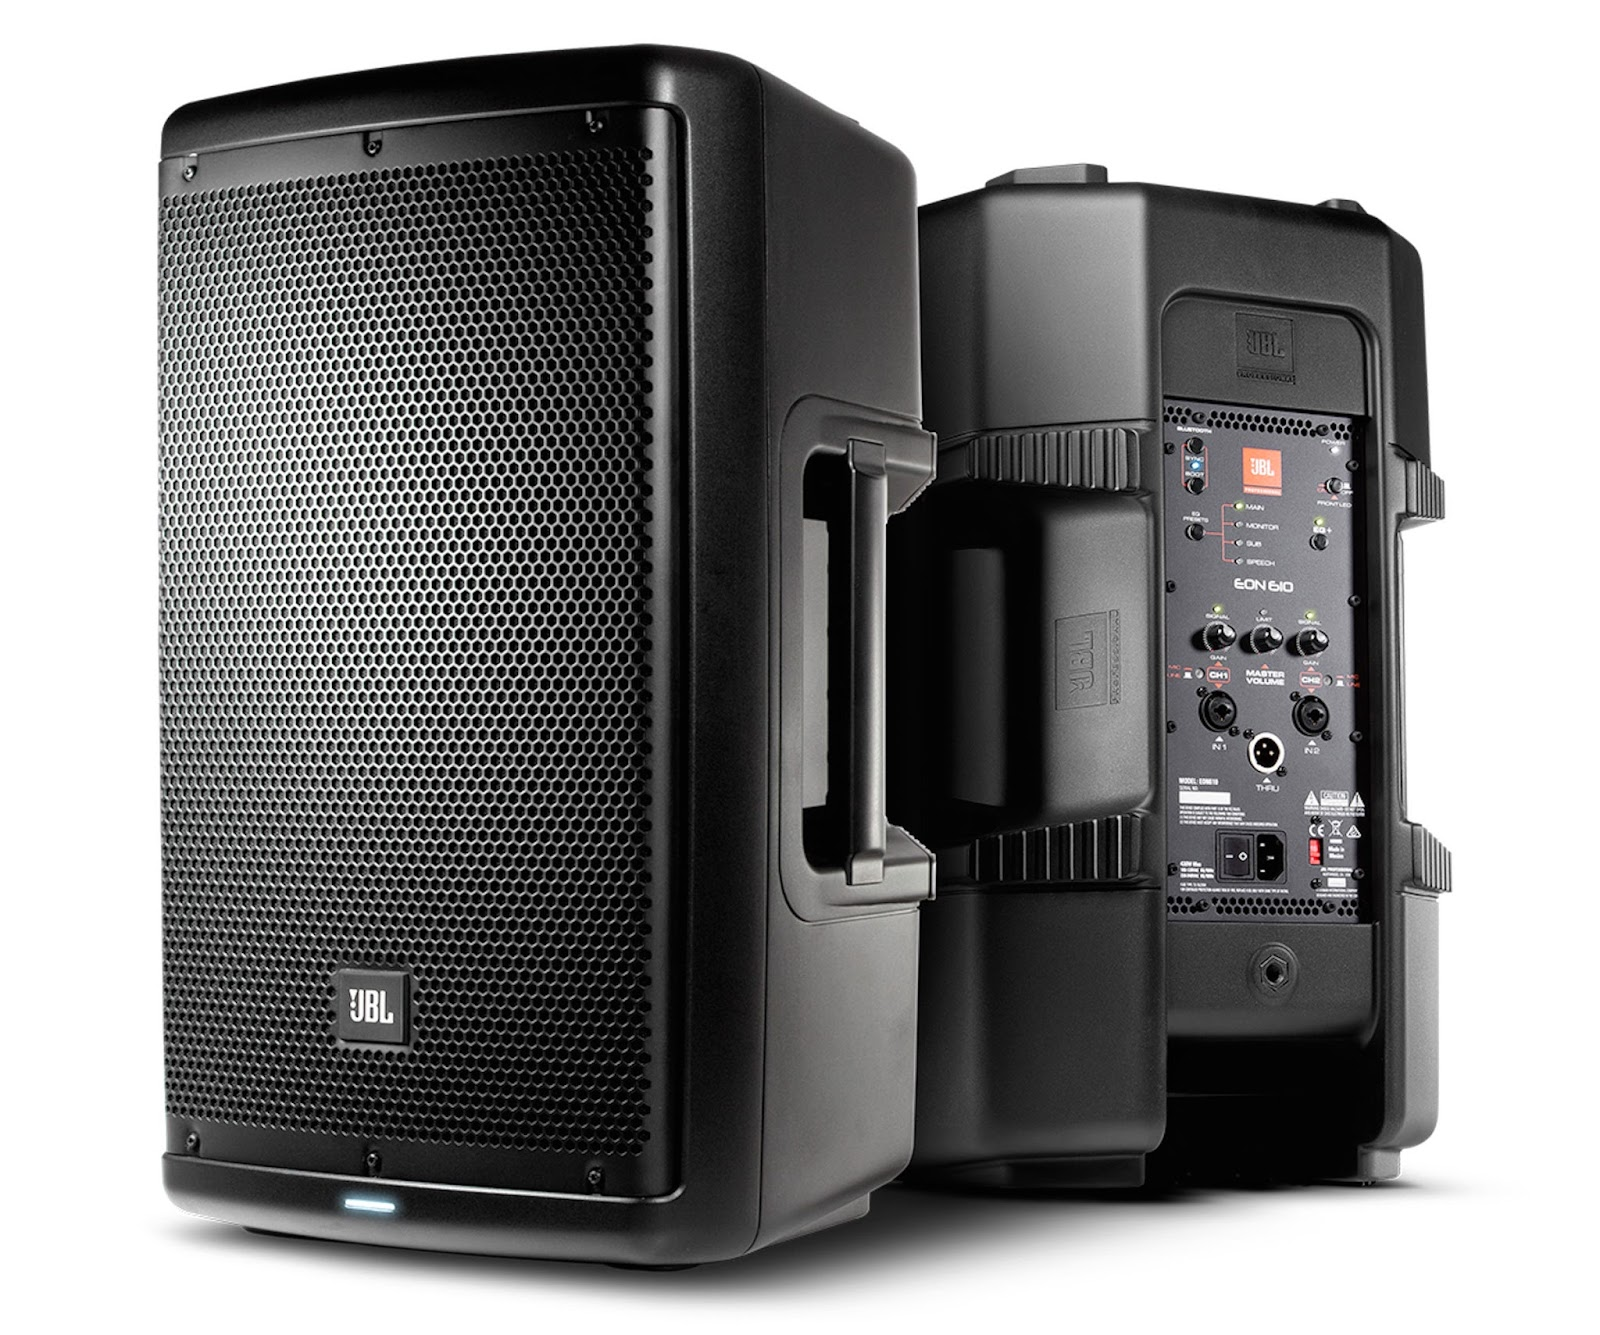 harman s jbl professional adds to groundbreaking eon600 portable pa series with eon610 and. Black Bedroom Furniture Sets. Home Design Ideas